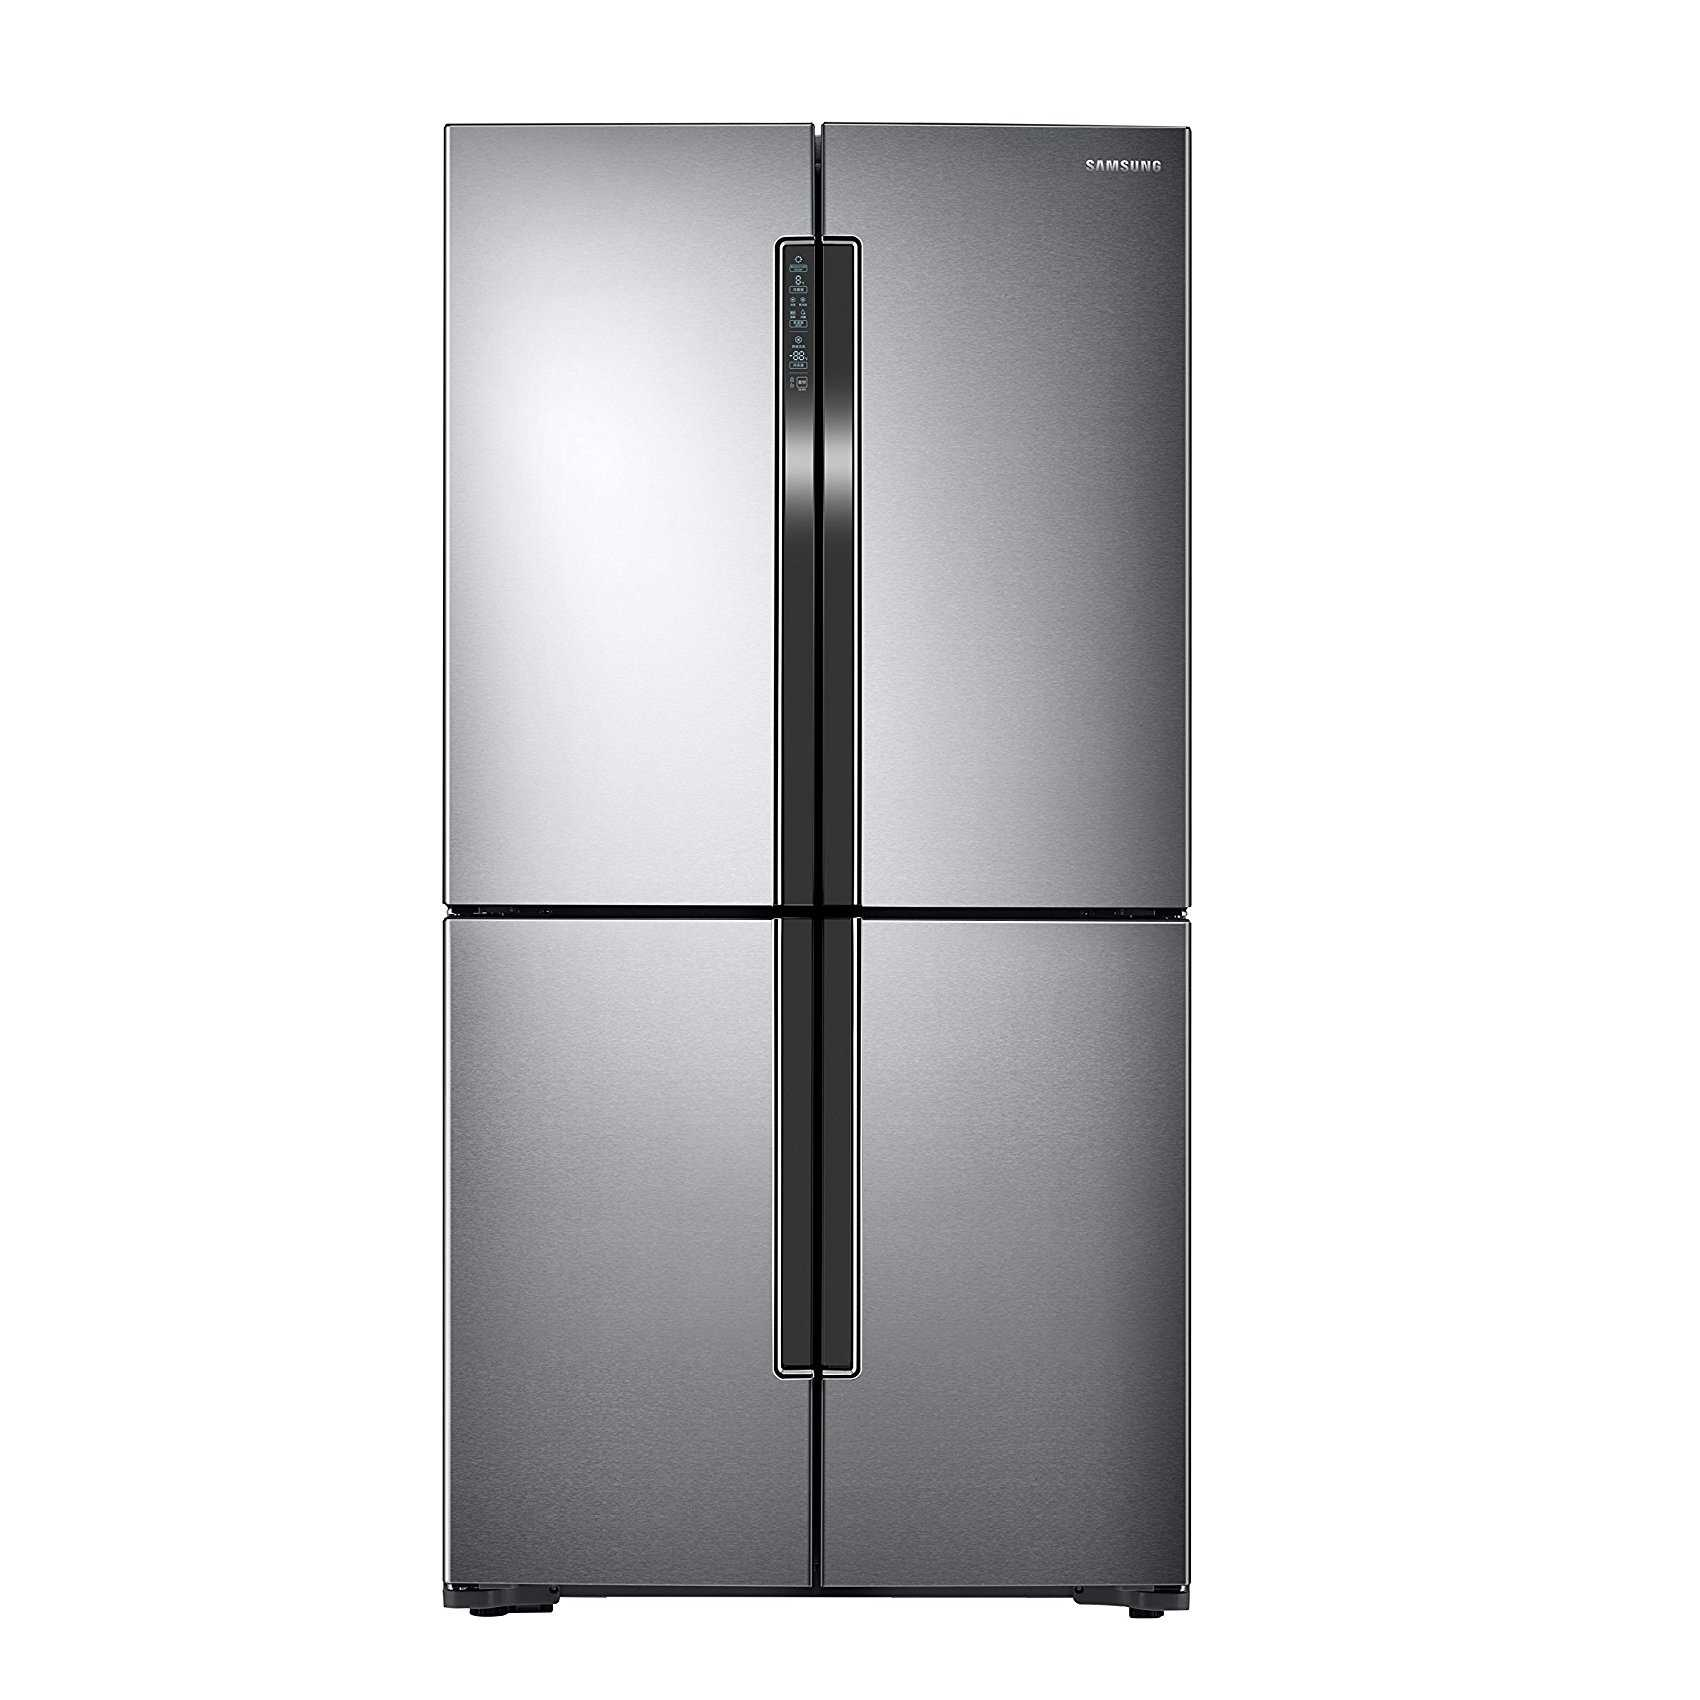 Samsung RF60J9090SL TL 680 Litres Frost Free Side by Side Refrigerator